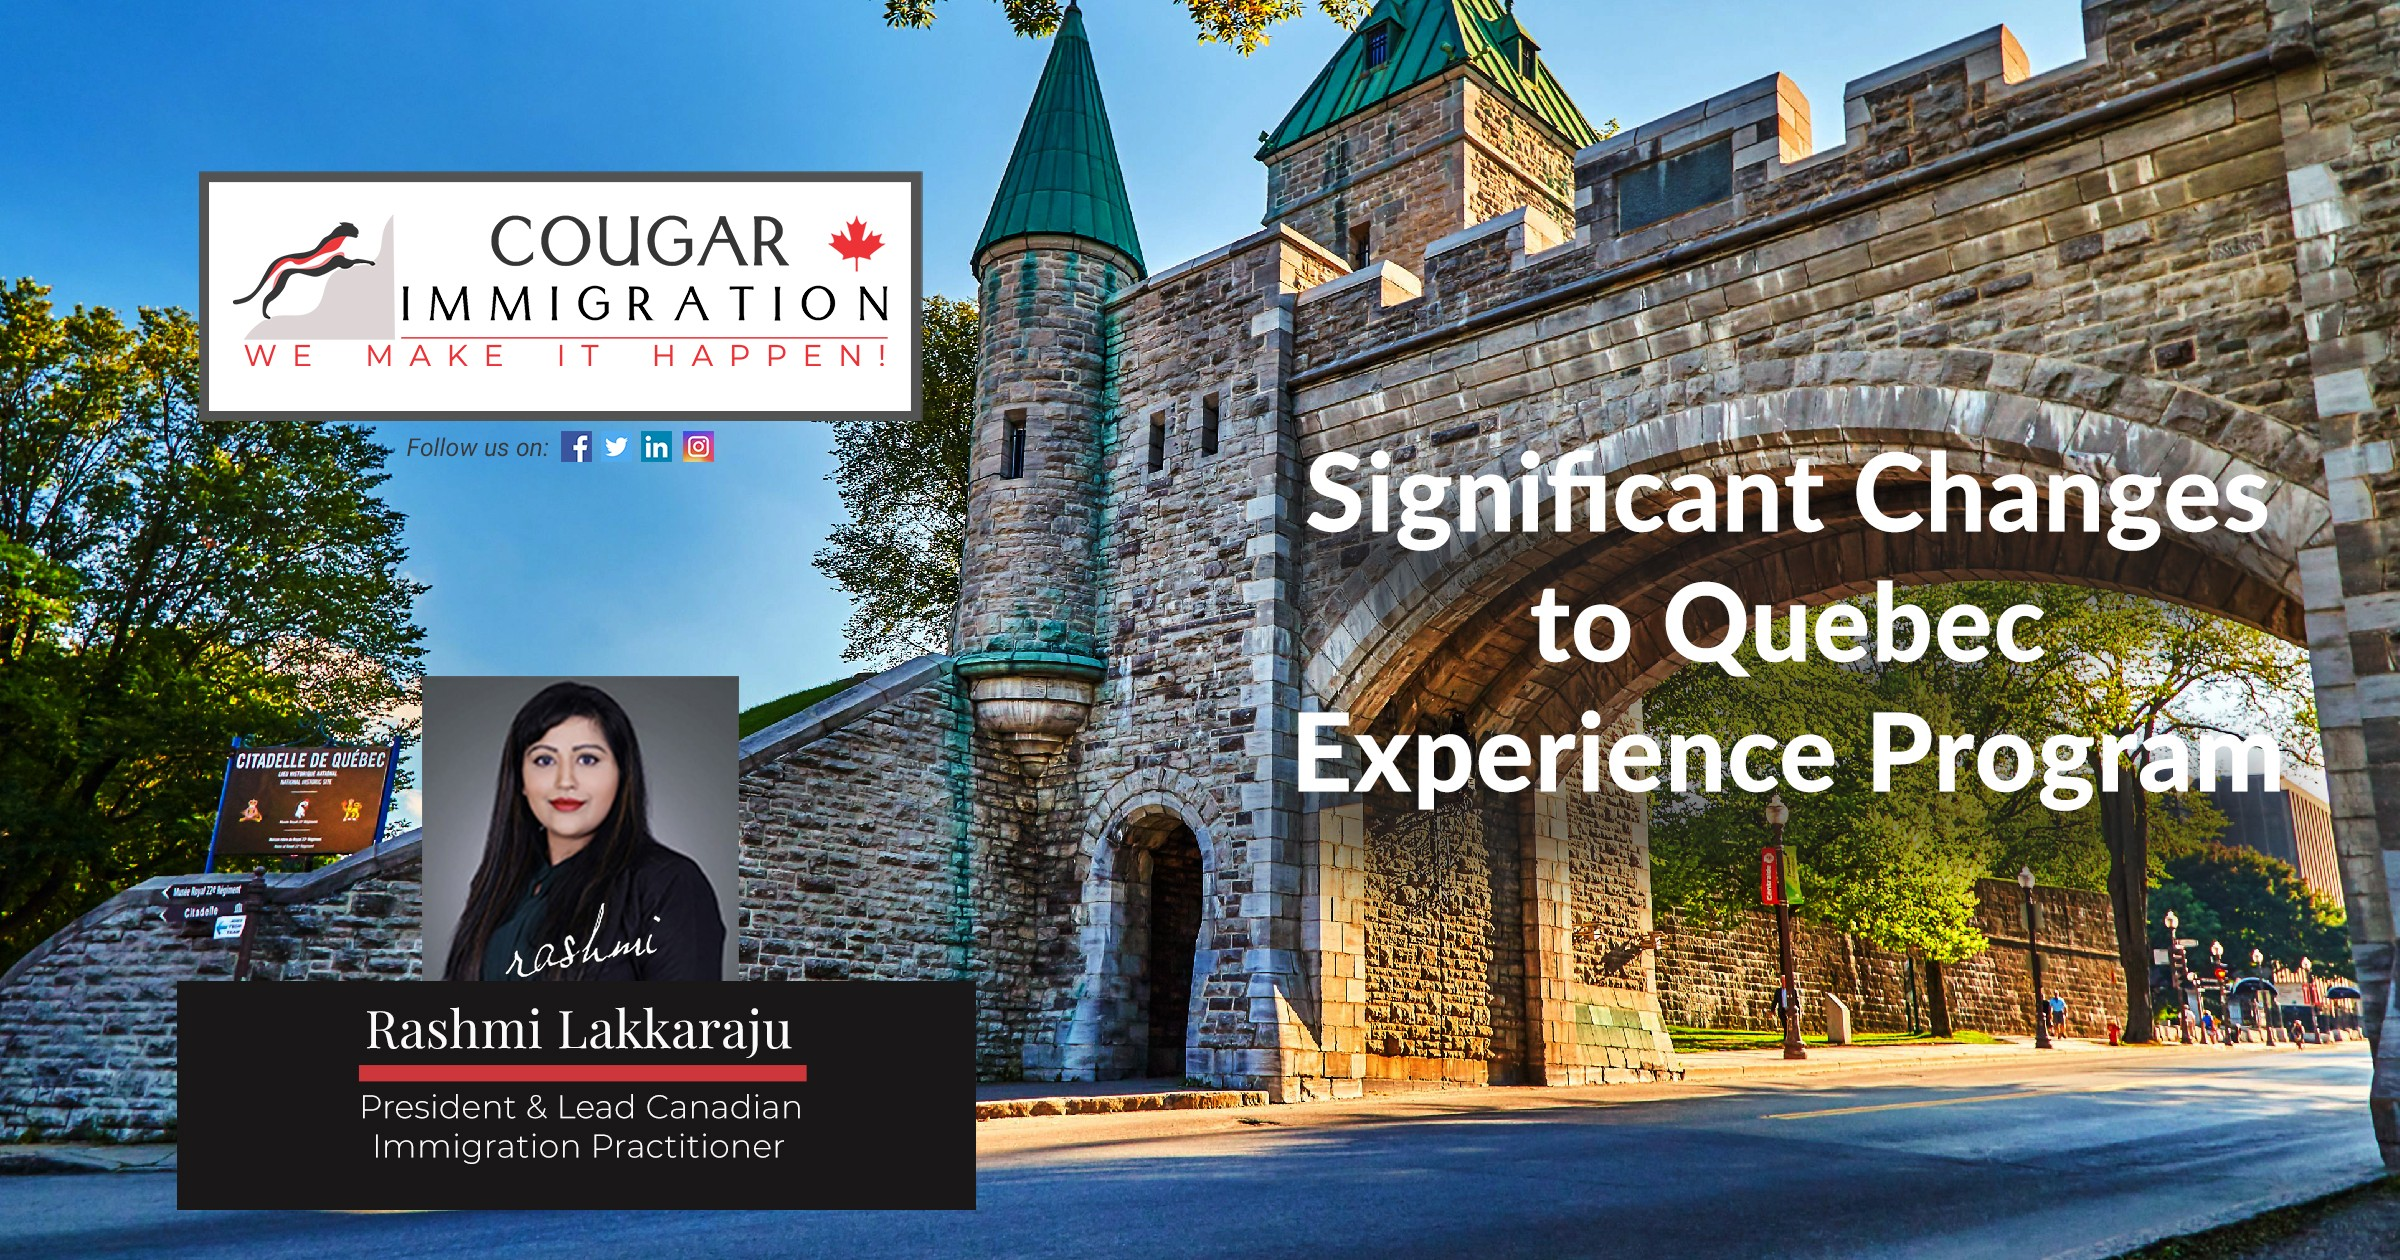 Quebec Announces Significant Changes to Quebec Experience Program thumbnail